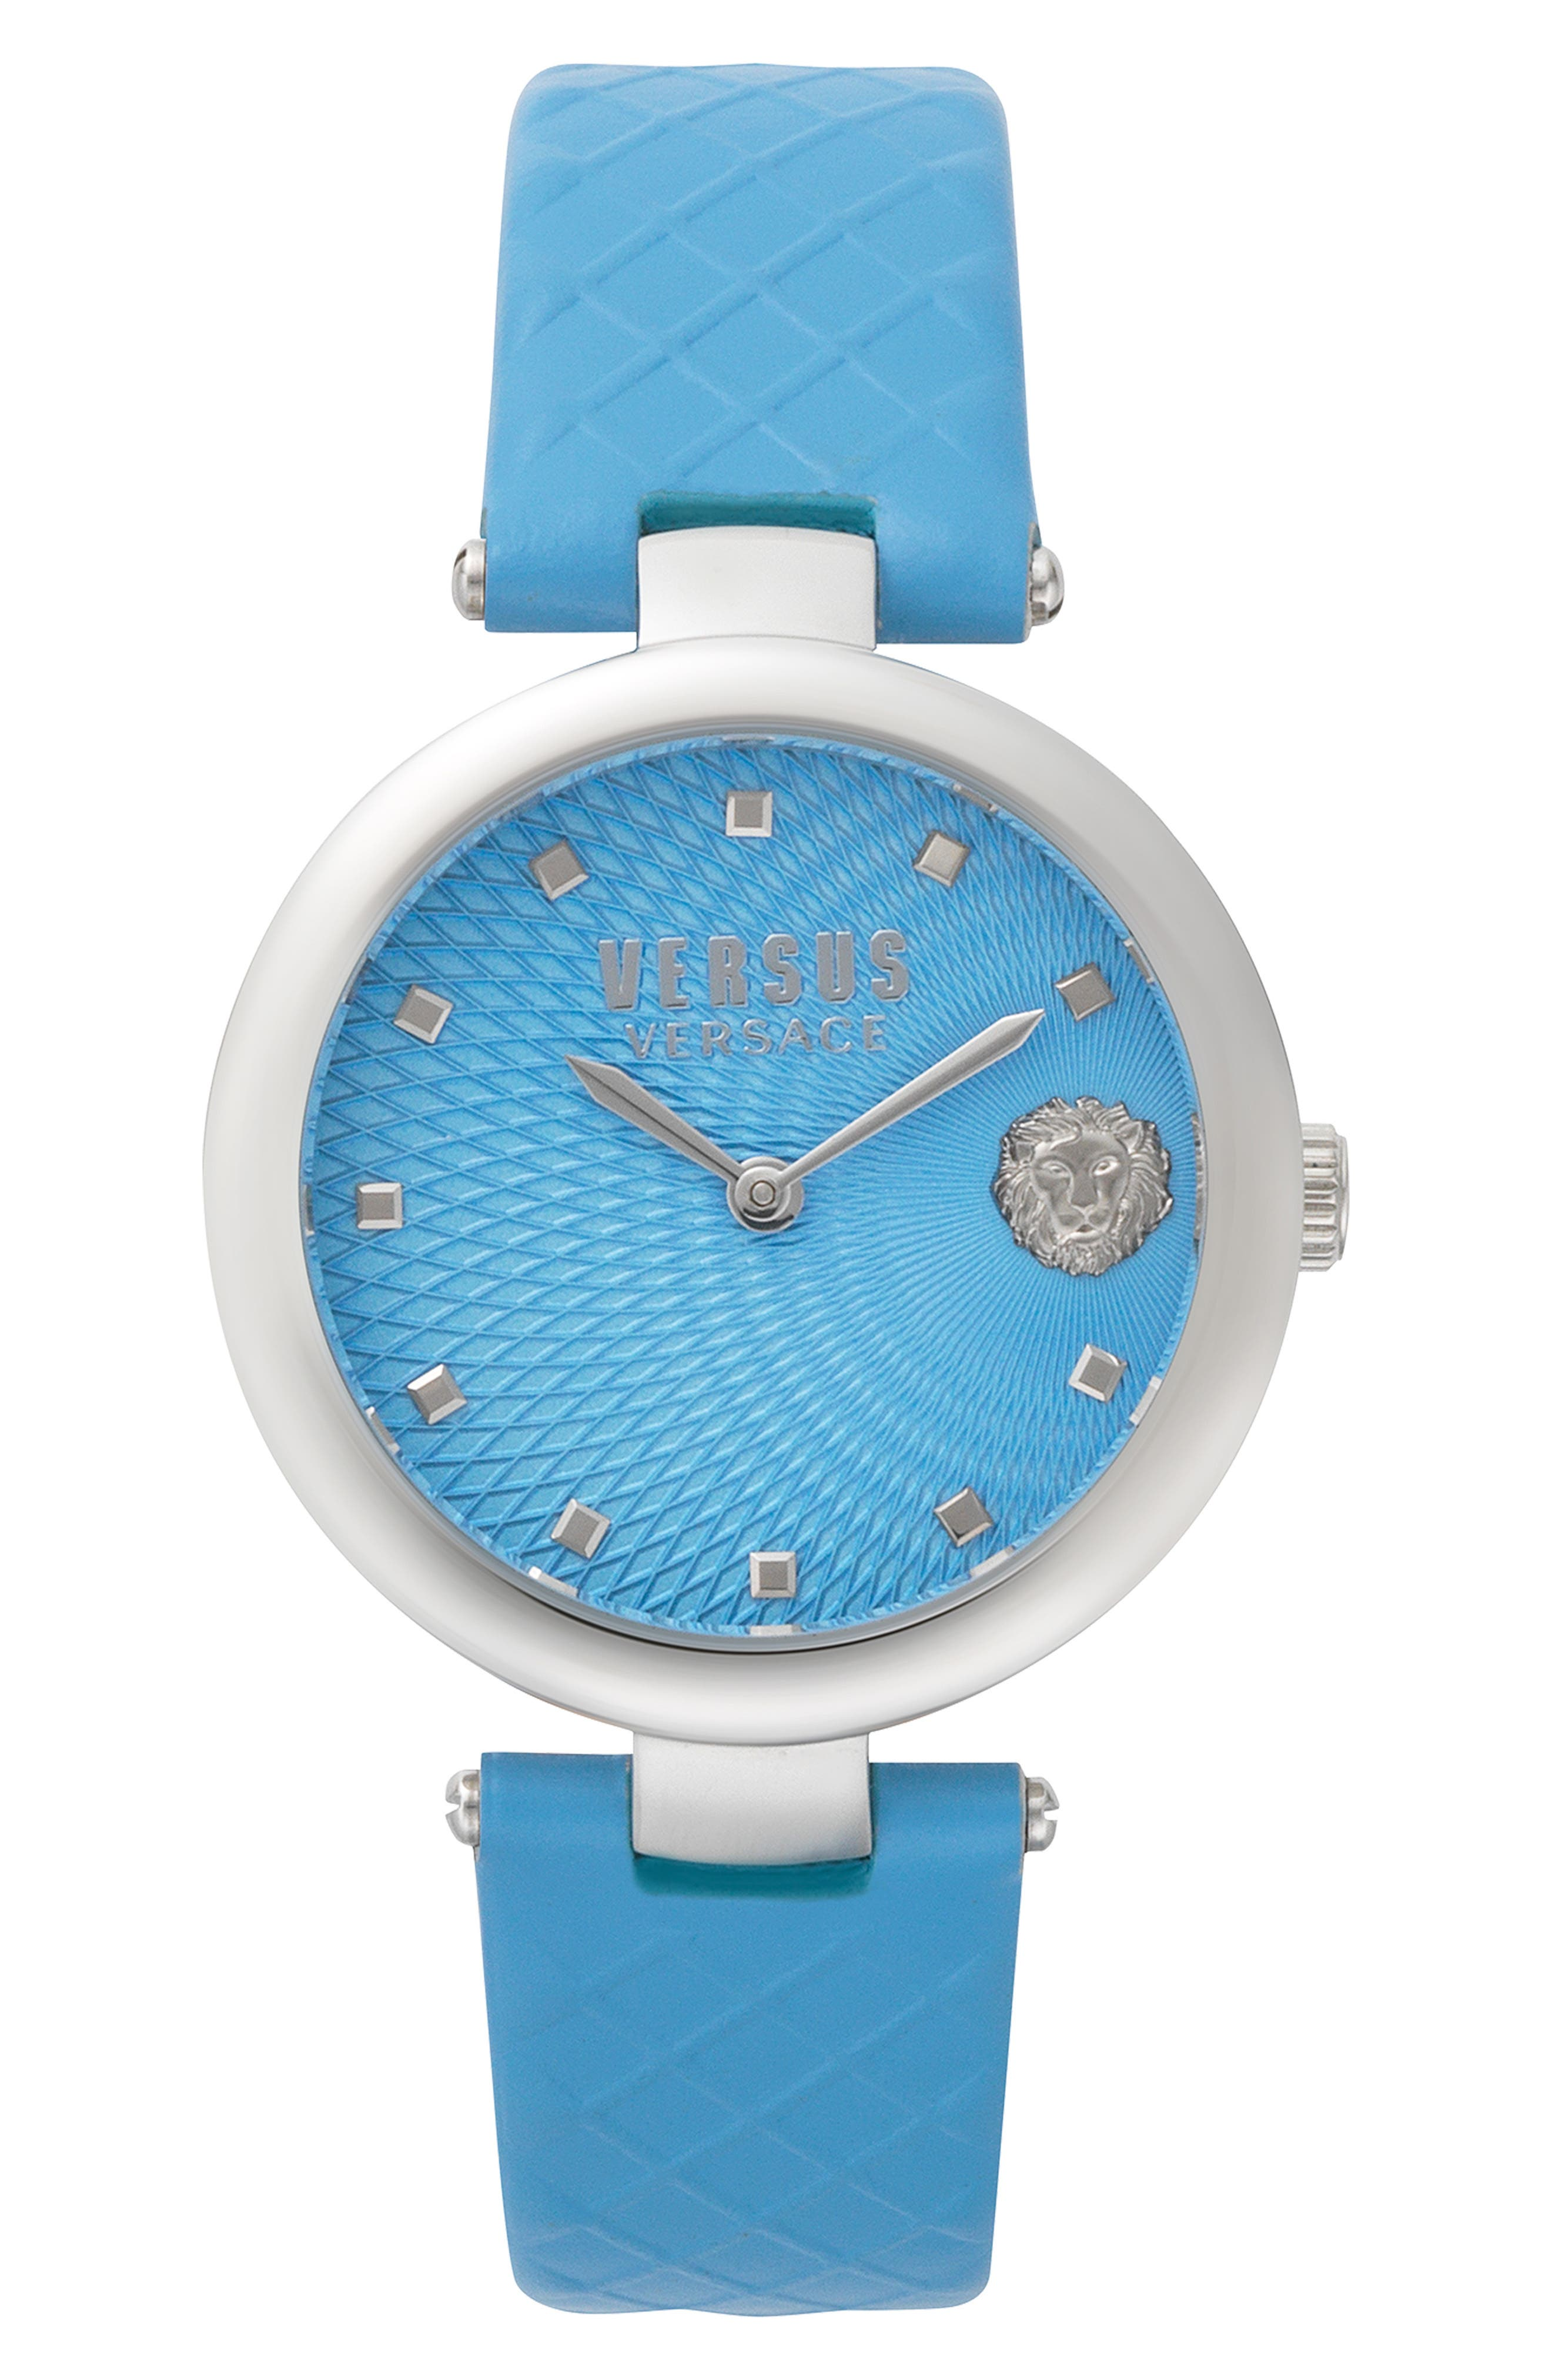 VERSUS VERSACE, Buffle Bay Leather Strap Watch, 36mm, Main thumbnail 1, color, BLUE/ SILVER